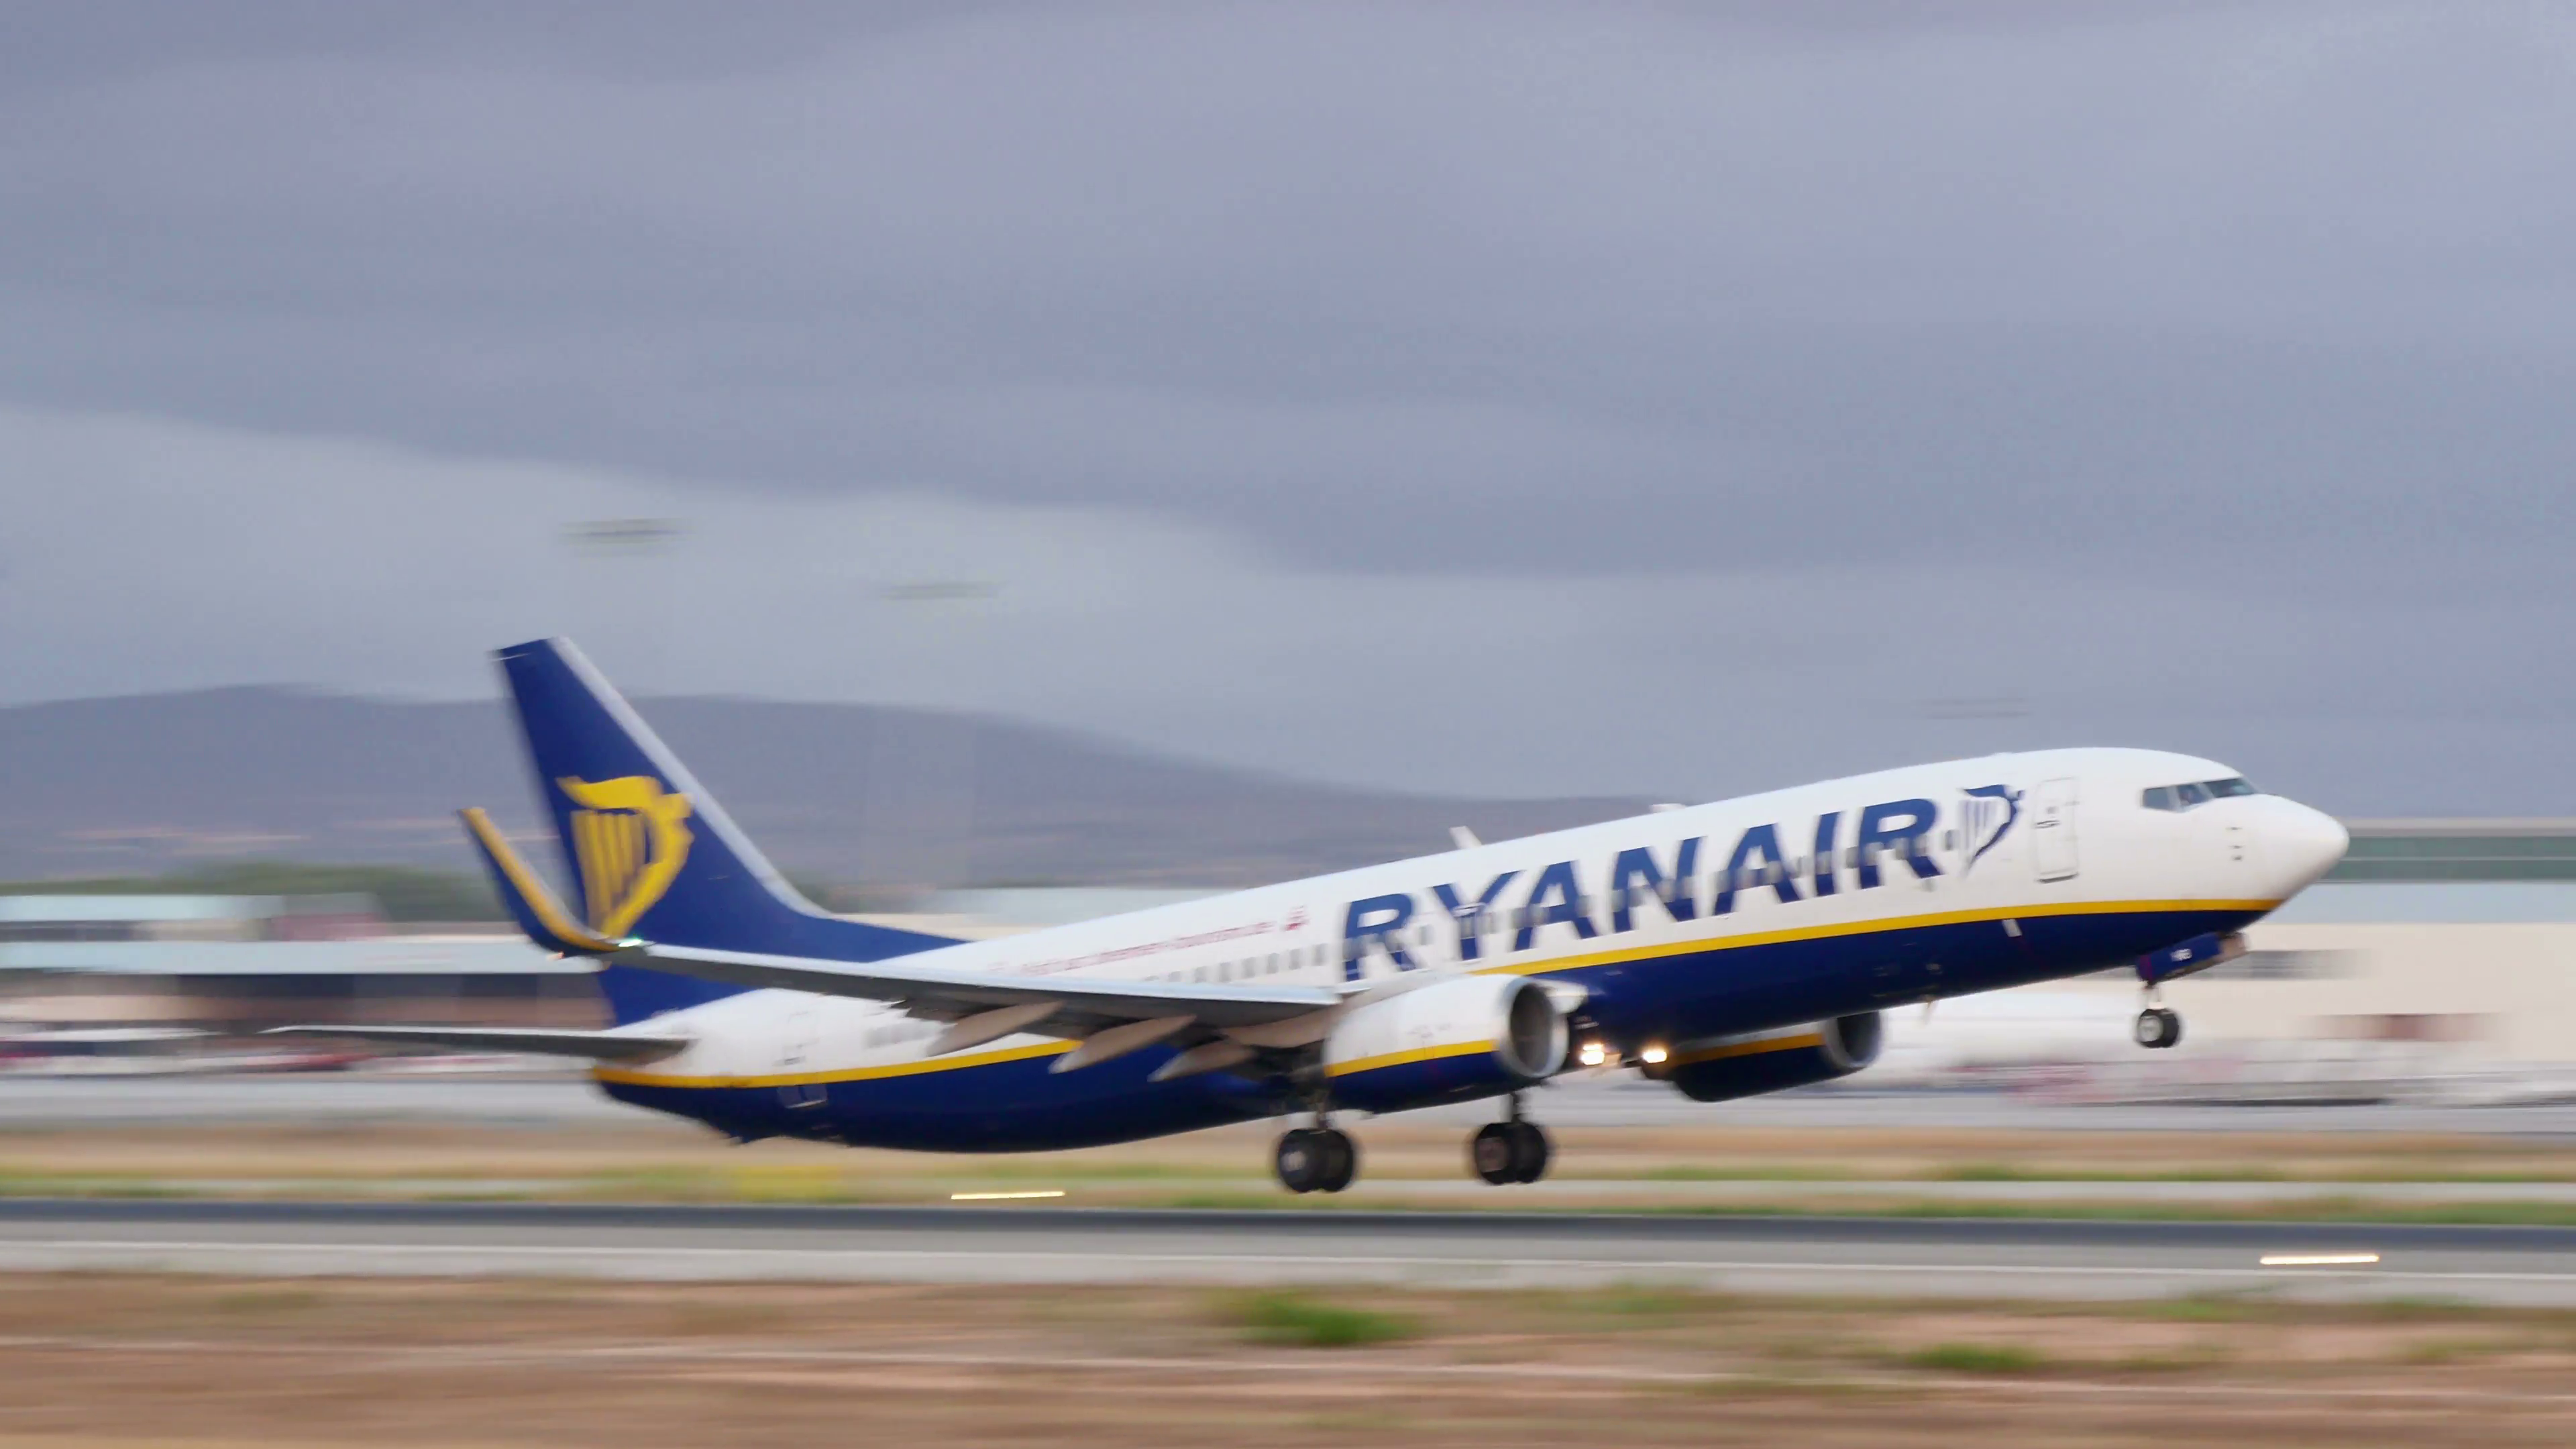 Boeing Airplane Taking Off at Majorca Airport. Passenger airplane taking off  at Majorca airport. Ryanair Airlines passenger airplane taking off. - Airplane Taking Off PNG